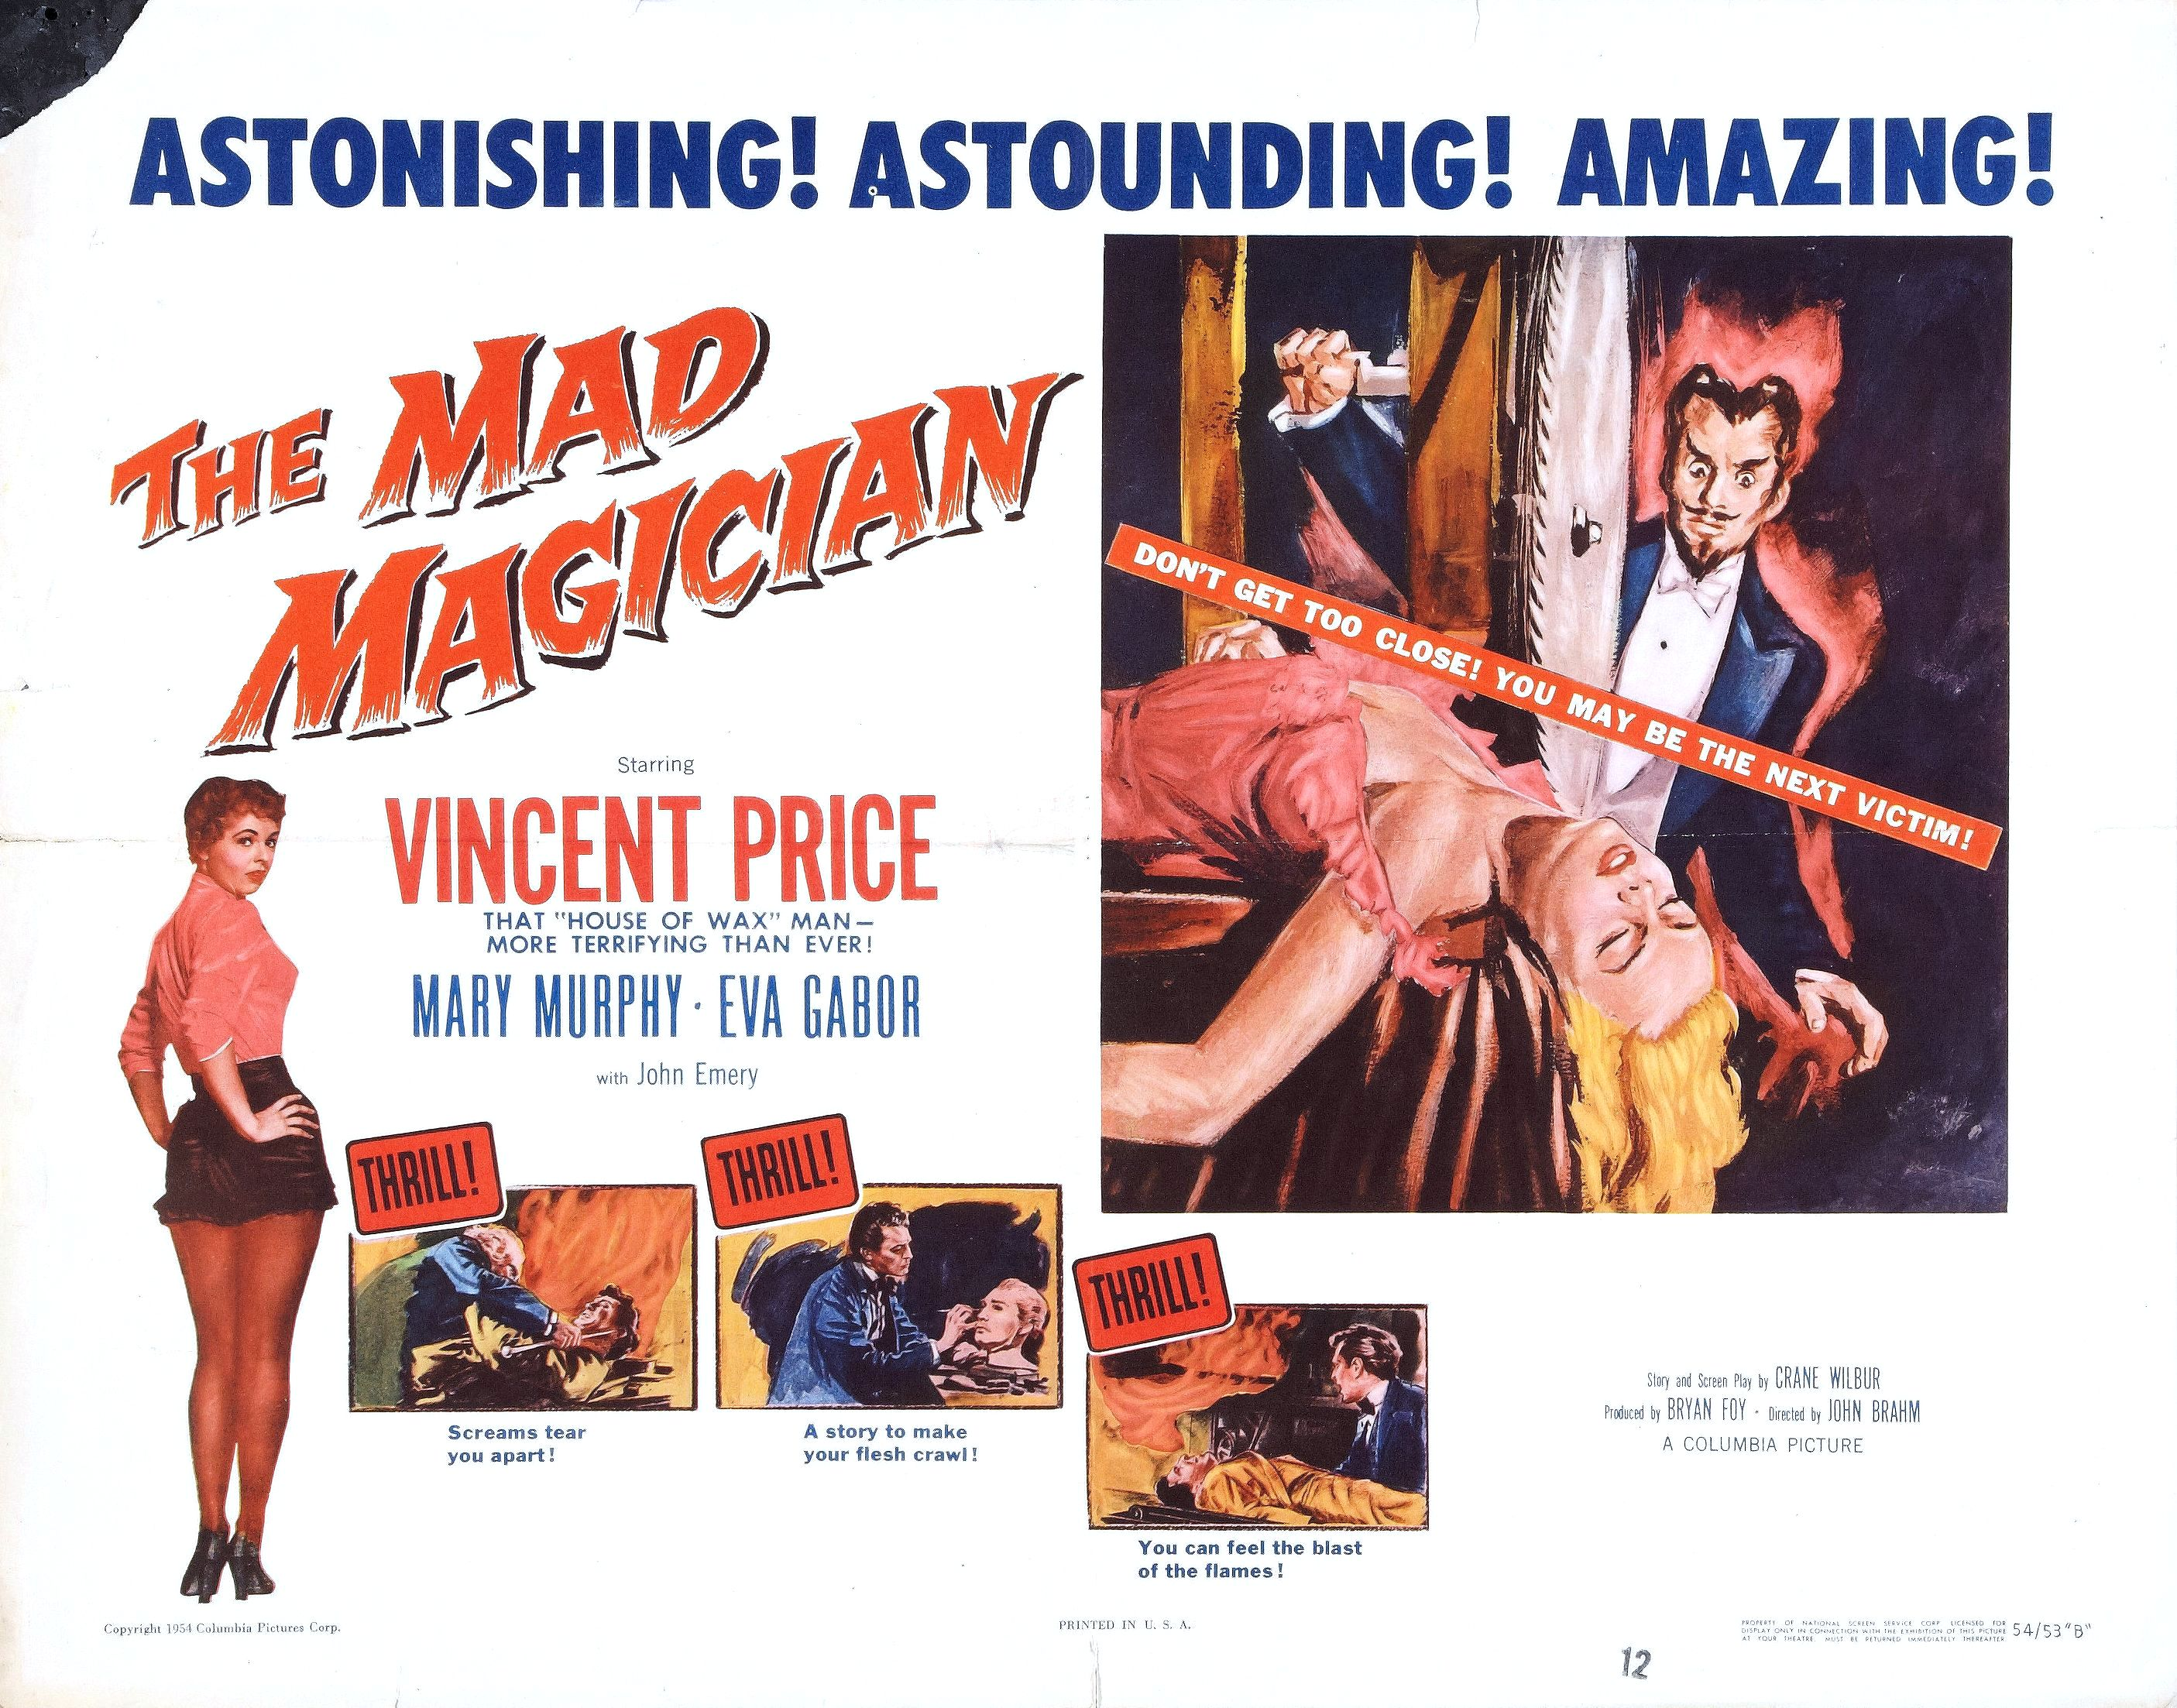 mad_magician_poster_02mondozillamad_magician_poster_01mad_magician_08mad_magician_13mad_magician_01Classic-Horror-DVDmad_magician_05claws_and_saucer_thumbnailCreature-Features-John-Stanleymad_magician_09vincent price art of fear book dennis meiklemad_magician_11the-mad-magician-movie-poster-1954-british-postermad_magician_poster_02Mad-Magician-pressbookMad-Magician-1954The-Mad-Magician-1954-Vincent-Price-promo-maskmad_magician_poster_04mad_magician_poster_031954_MADMAGICIAN_DB